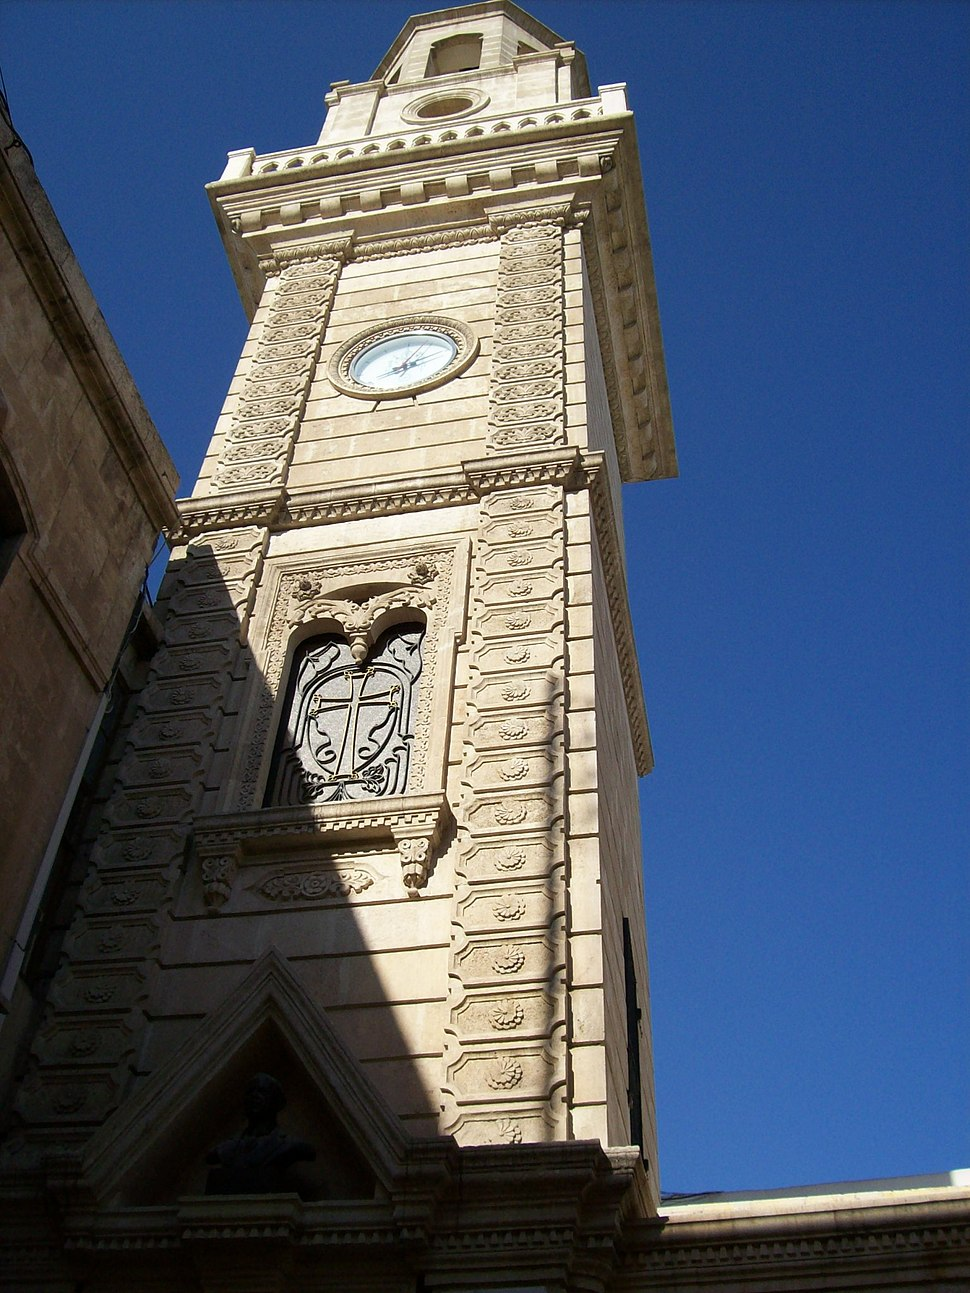 Forty Martyrs Cathedral of Aleppo, the belfry